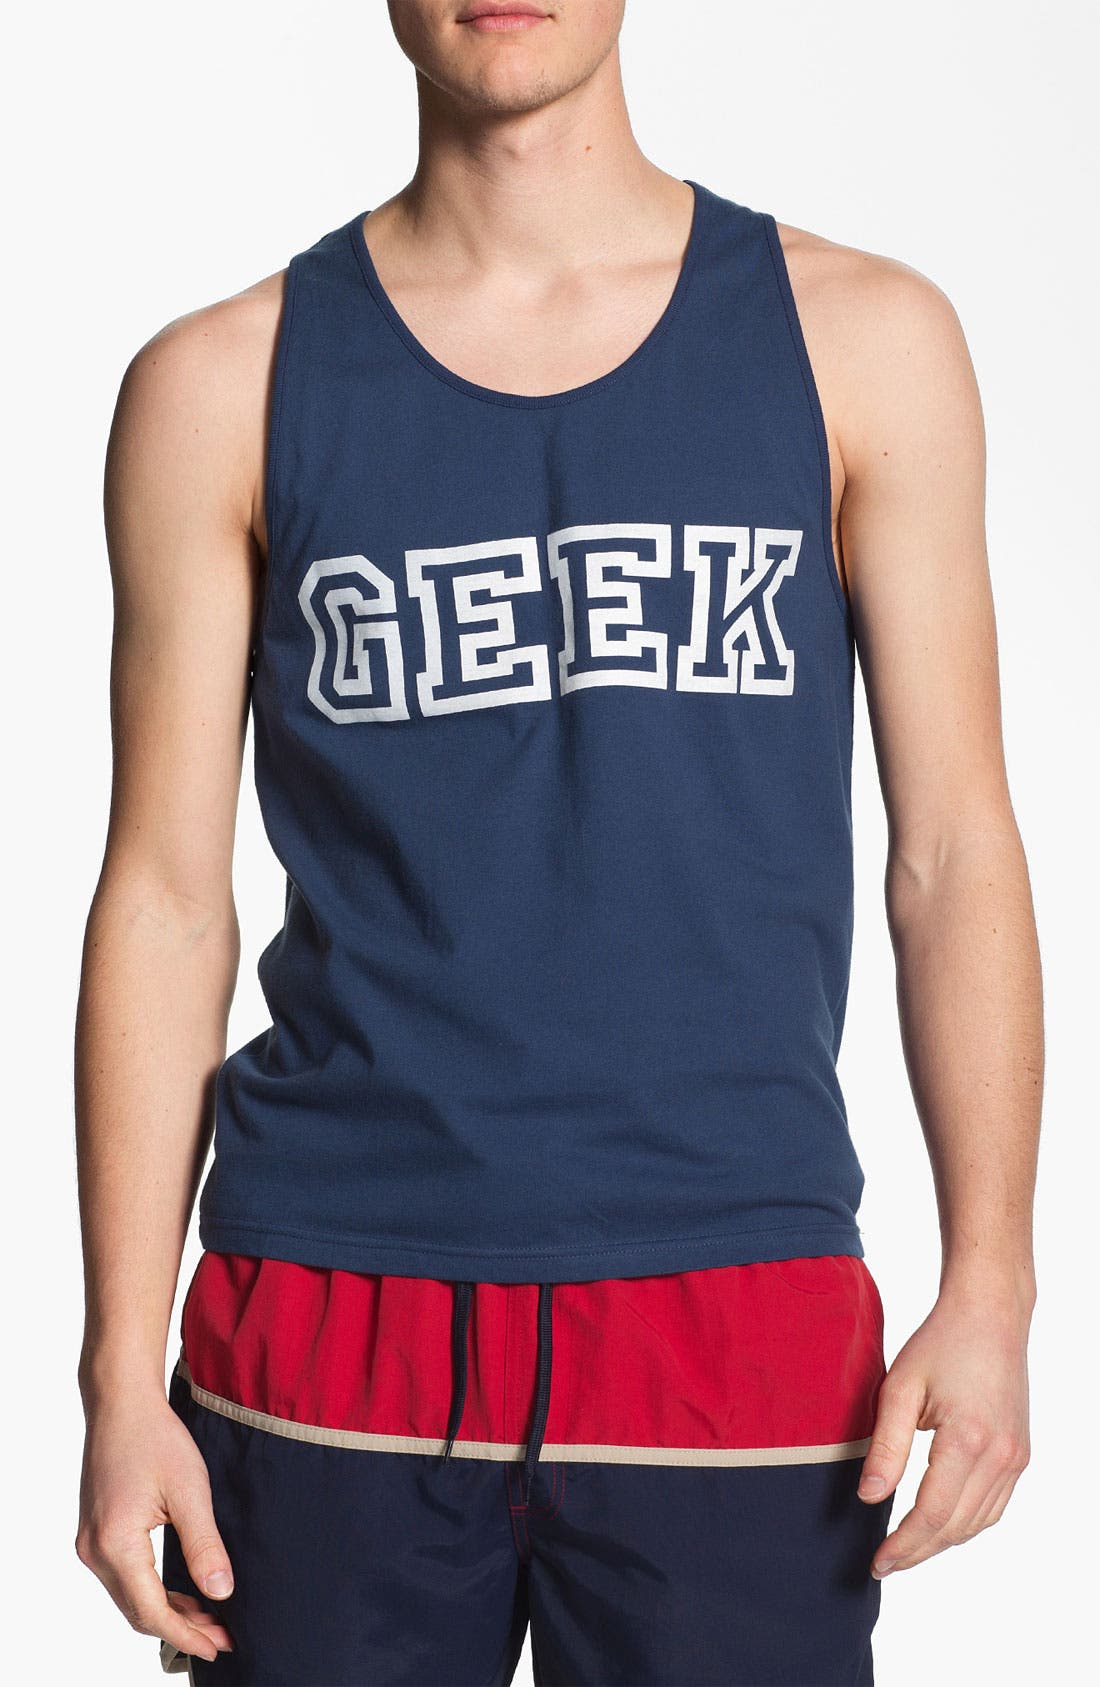 Alternate Image 1 Selected - Topman 'Geek' Print Tank Top